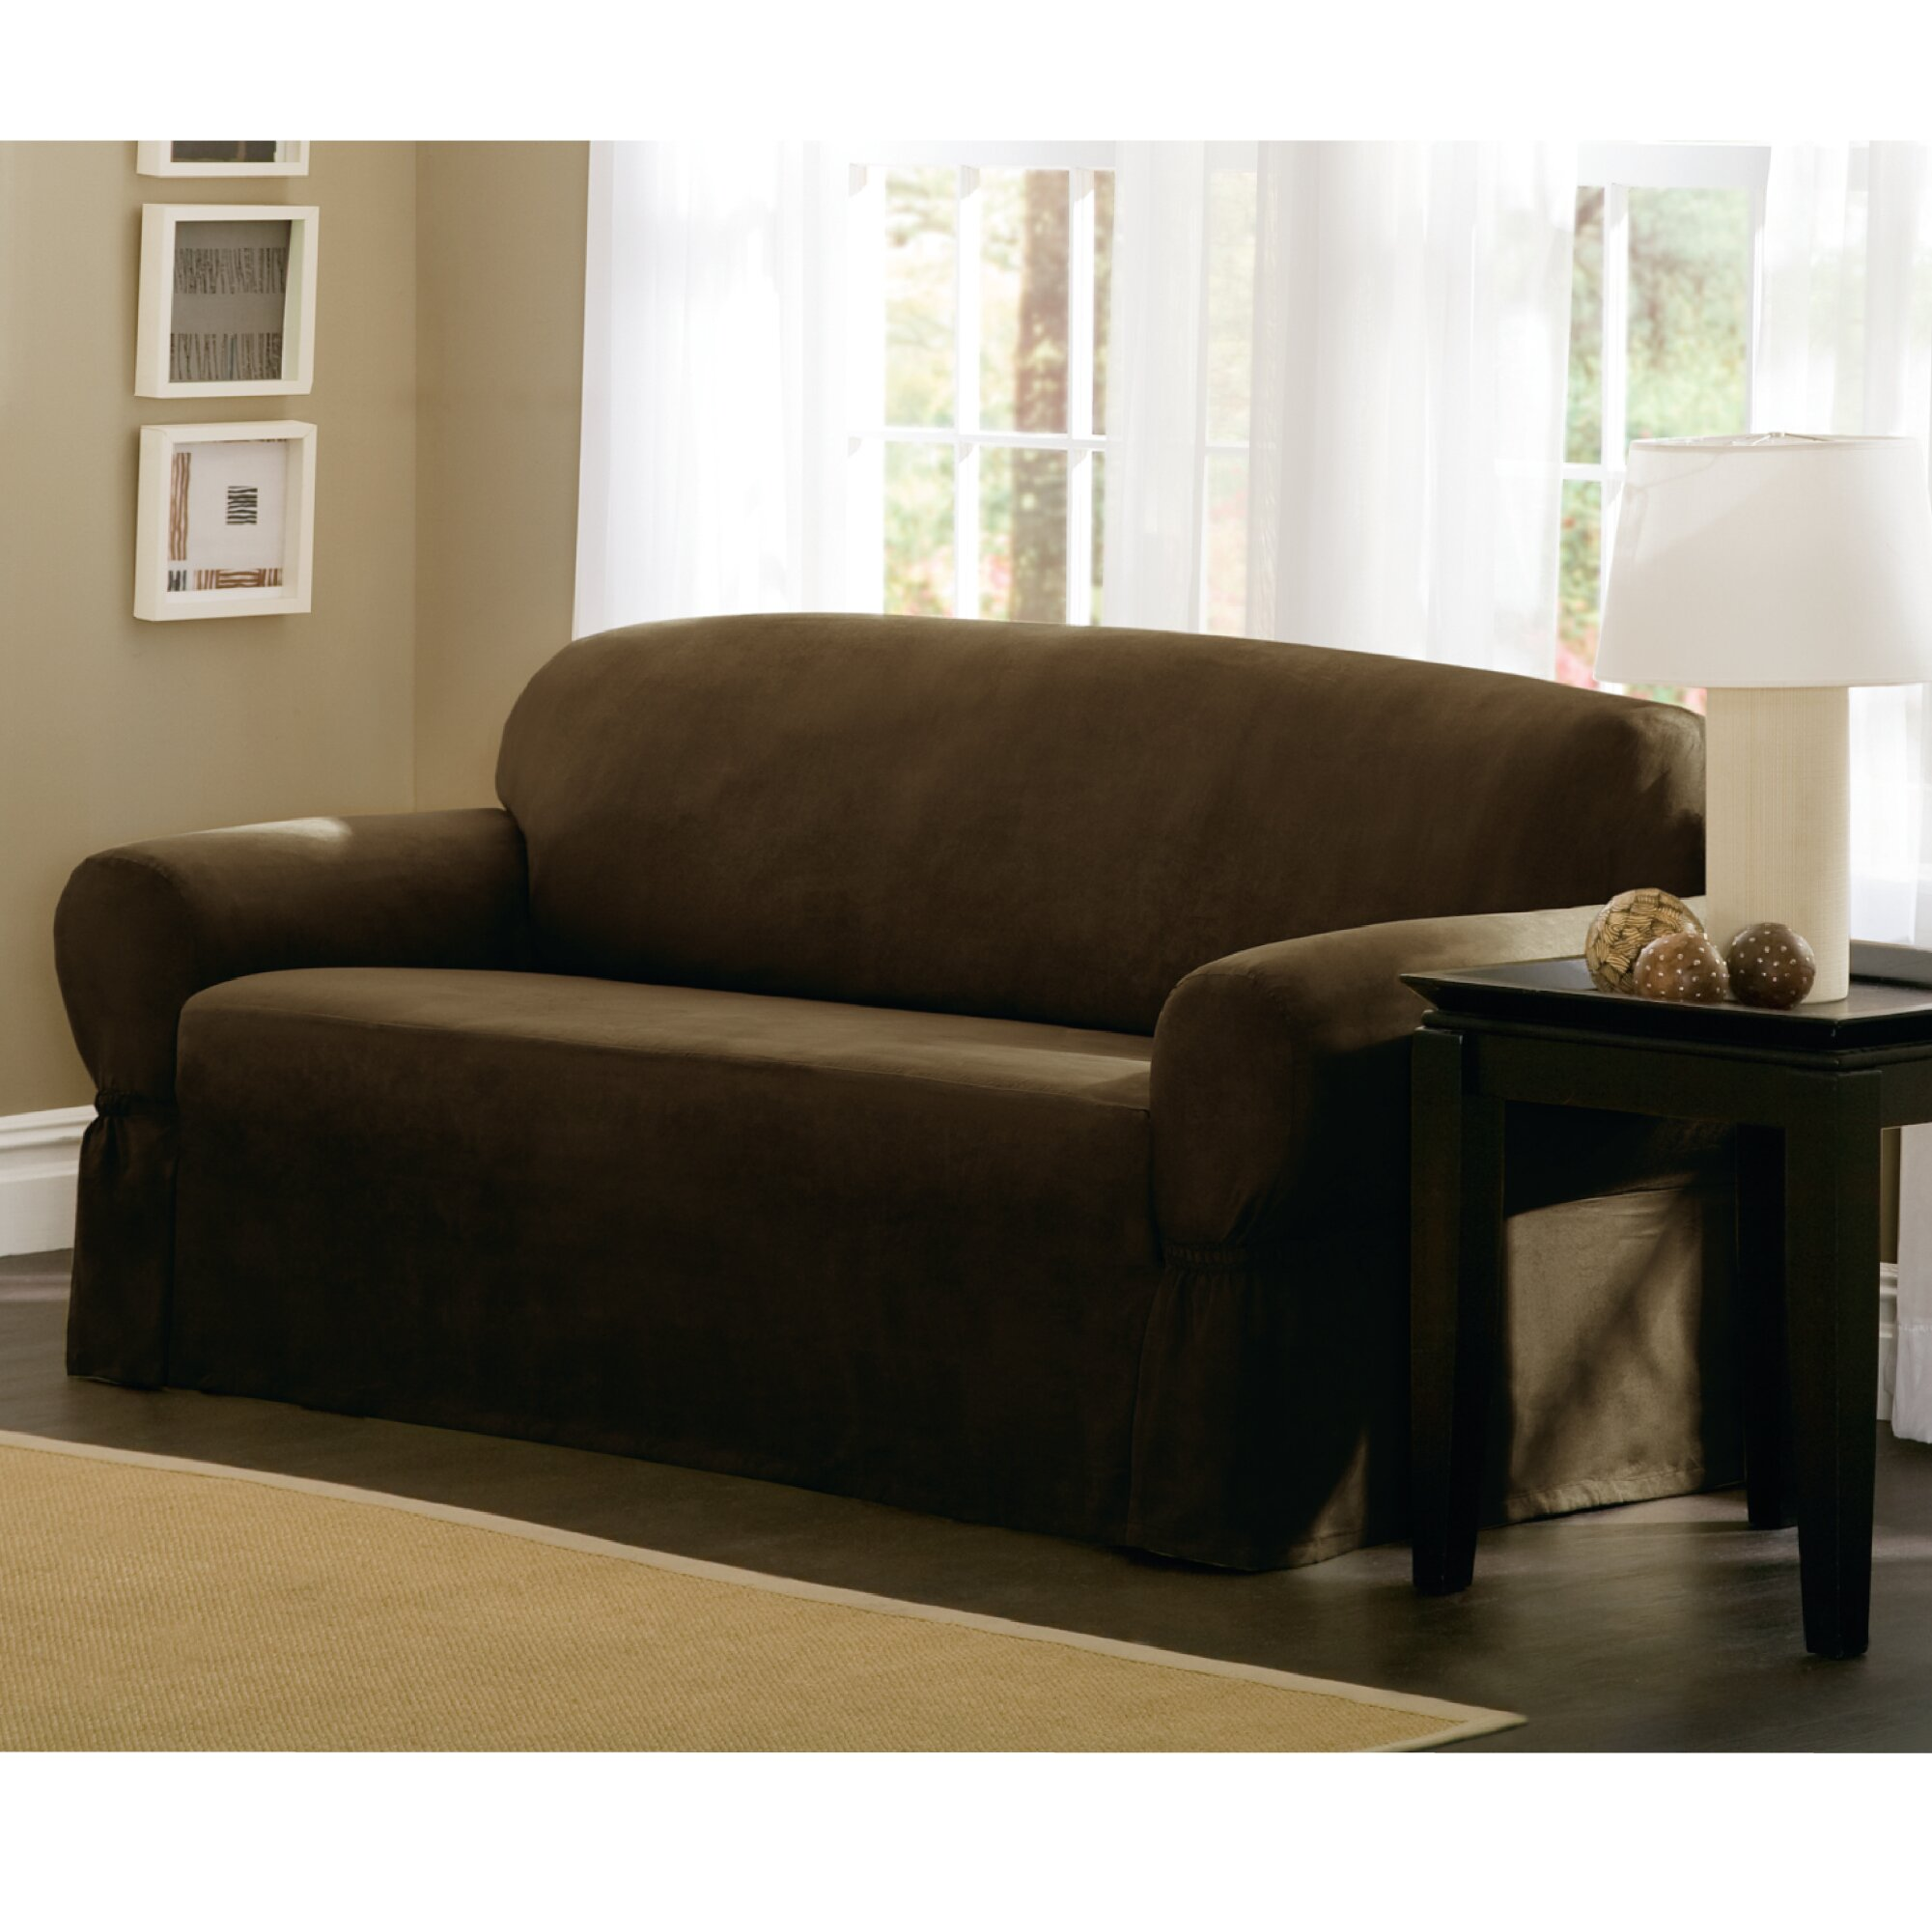 Maytex T-Cushion Loveseat/Sofa Slipcover & Reviews